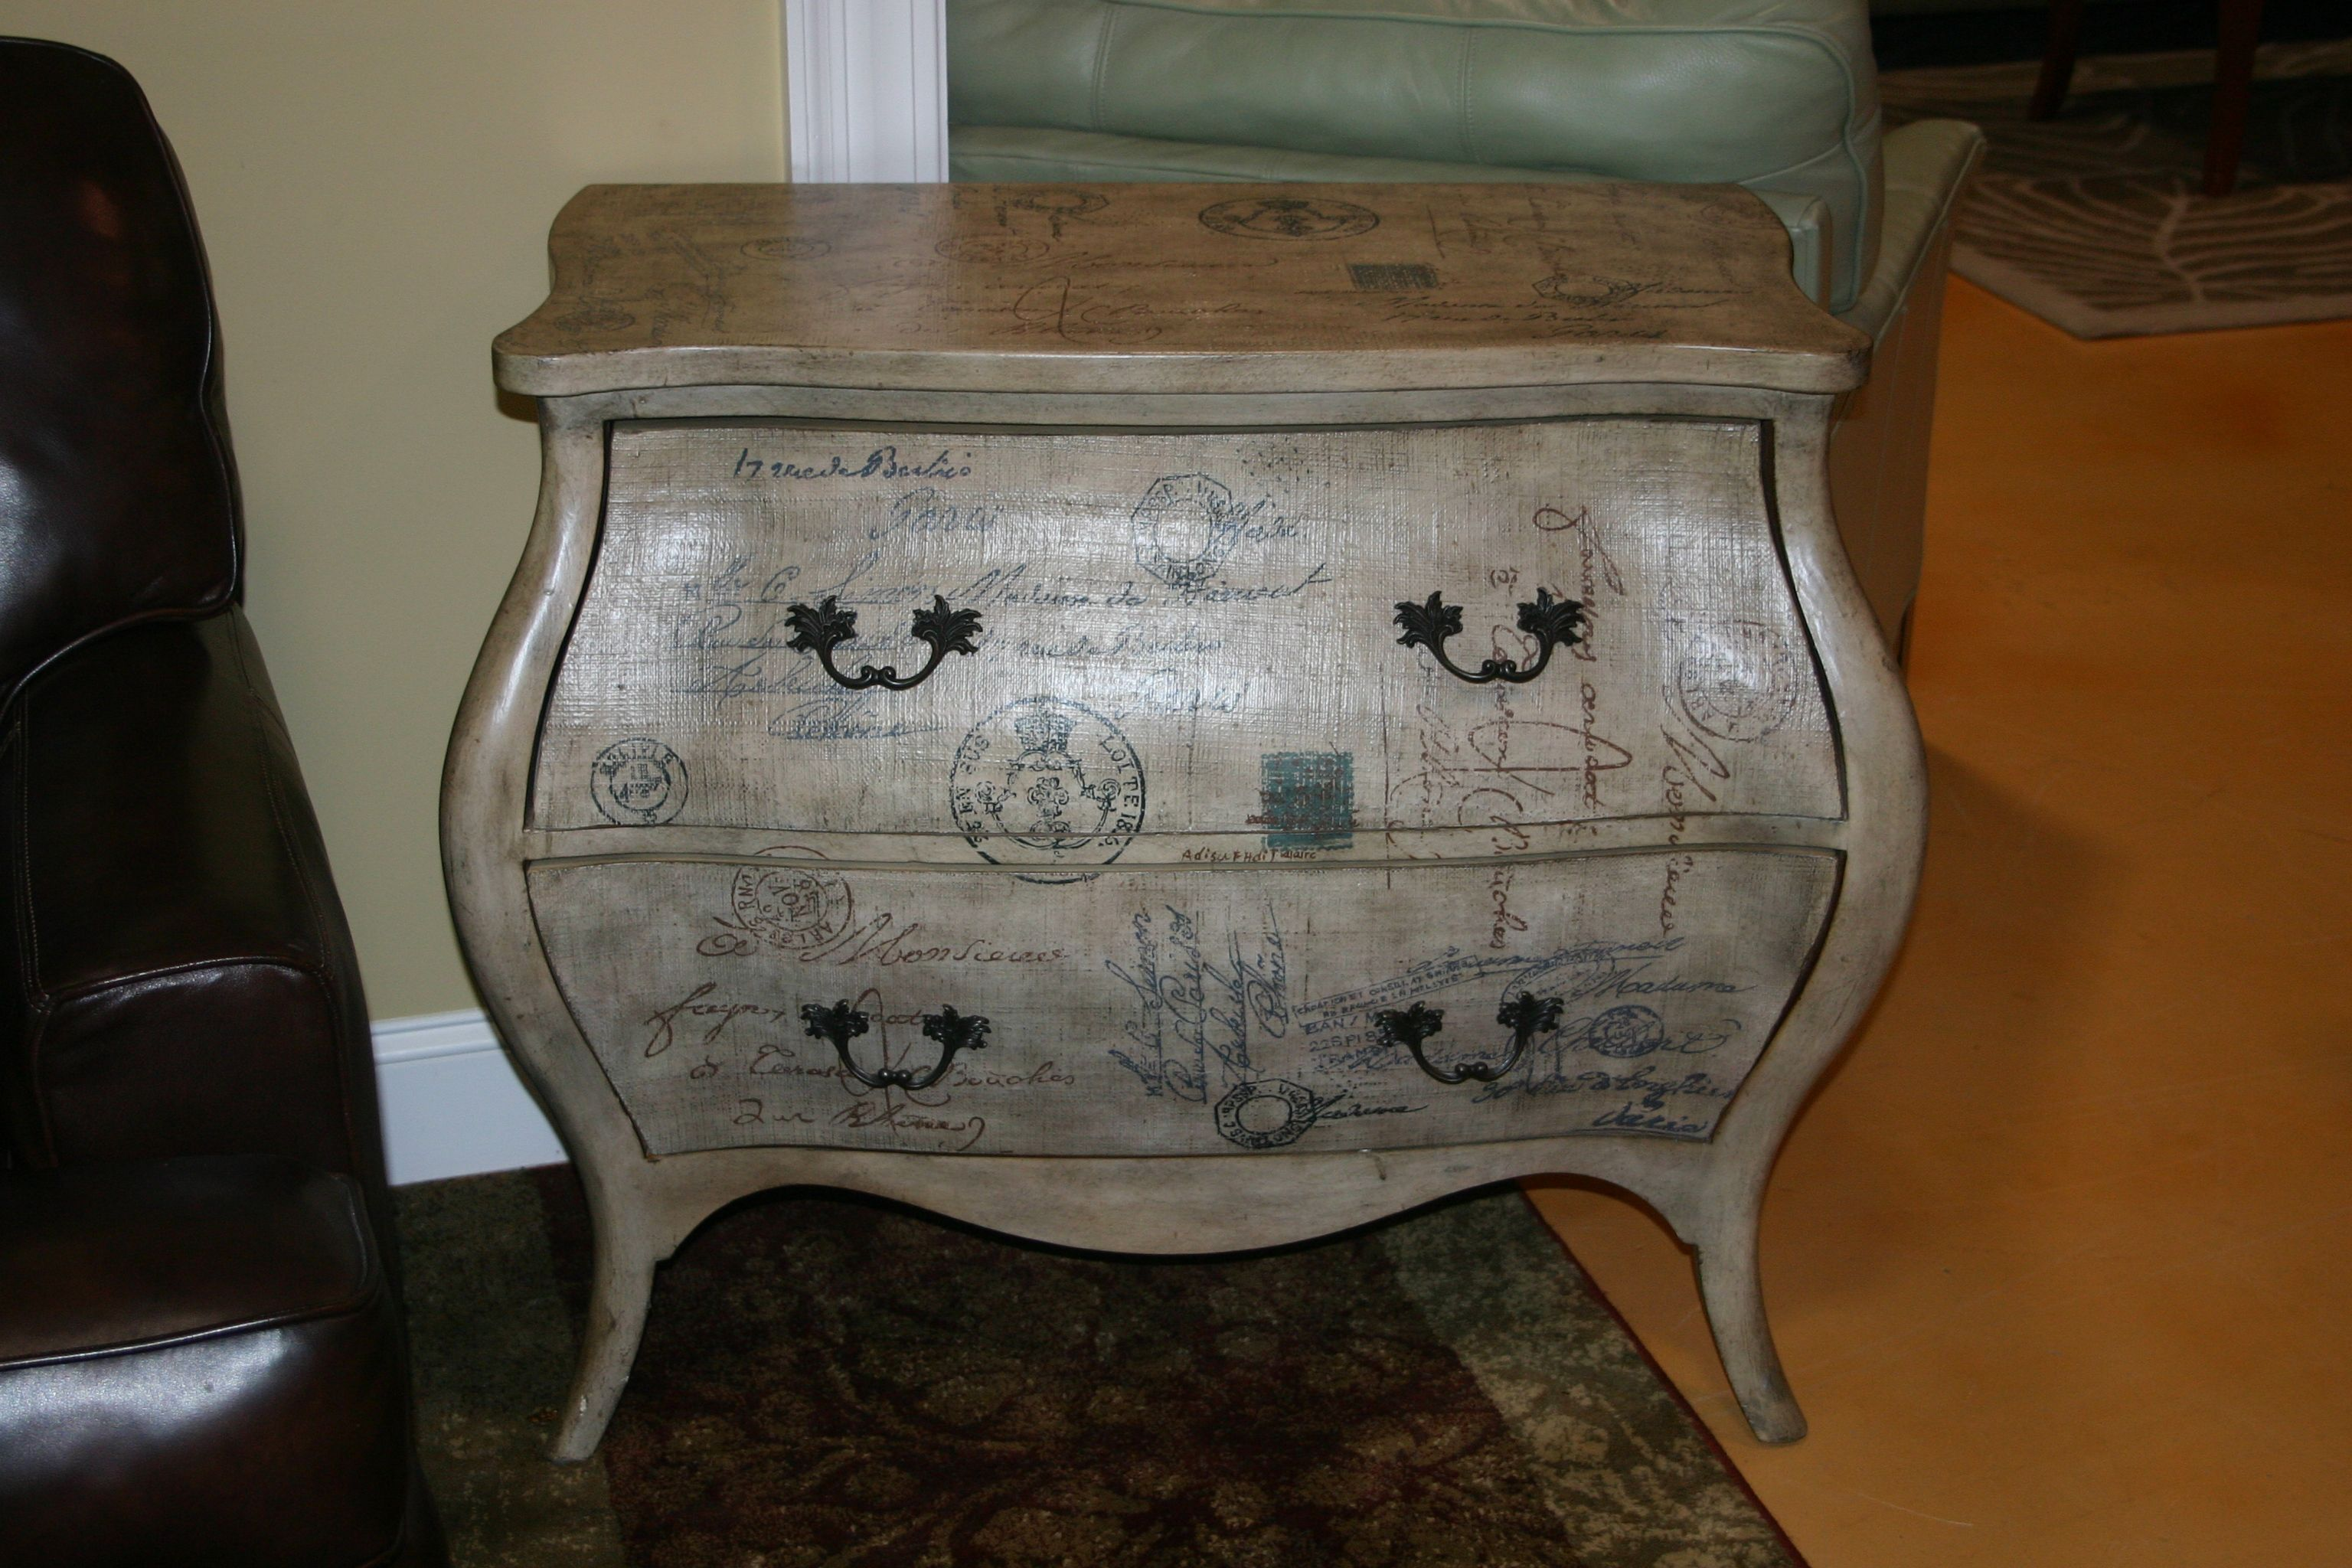 Visit My Rooms Furniture Gallery In Savannah Ga For Trendy Accent Pieces Home Decor That Are Sure To Add Style To Your Ho Room Furniture Furniture Home Decor